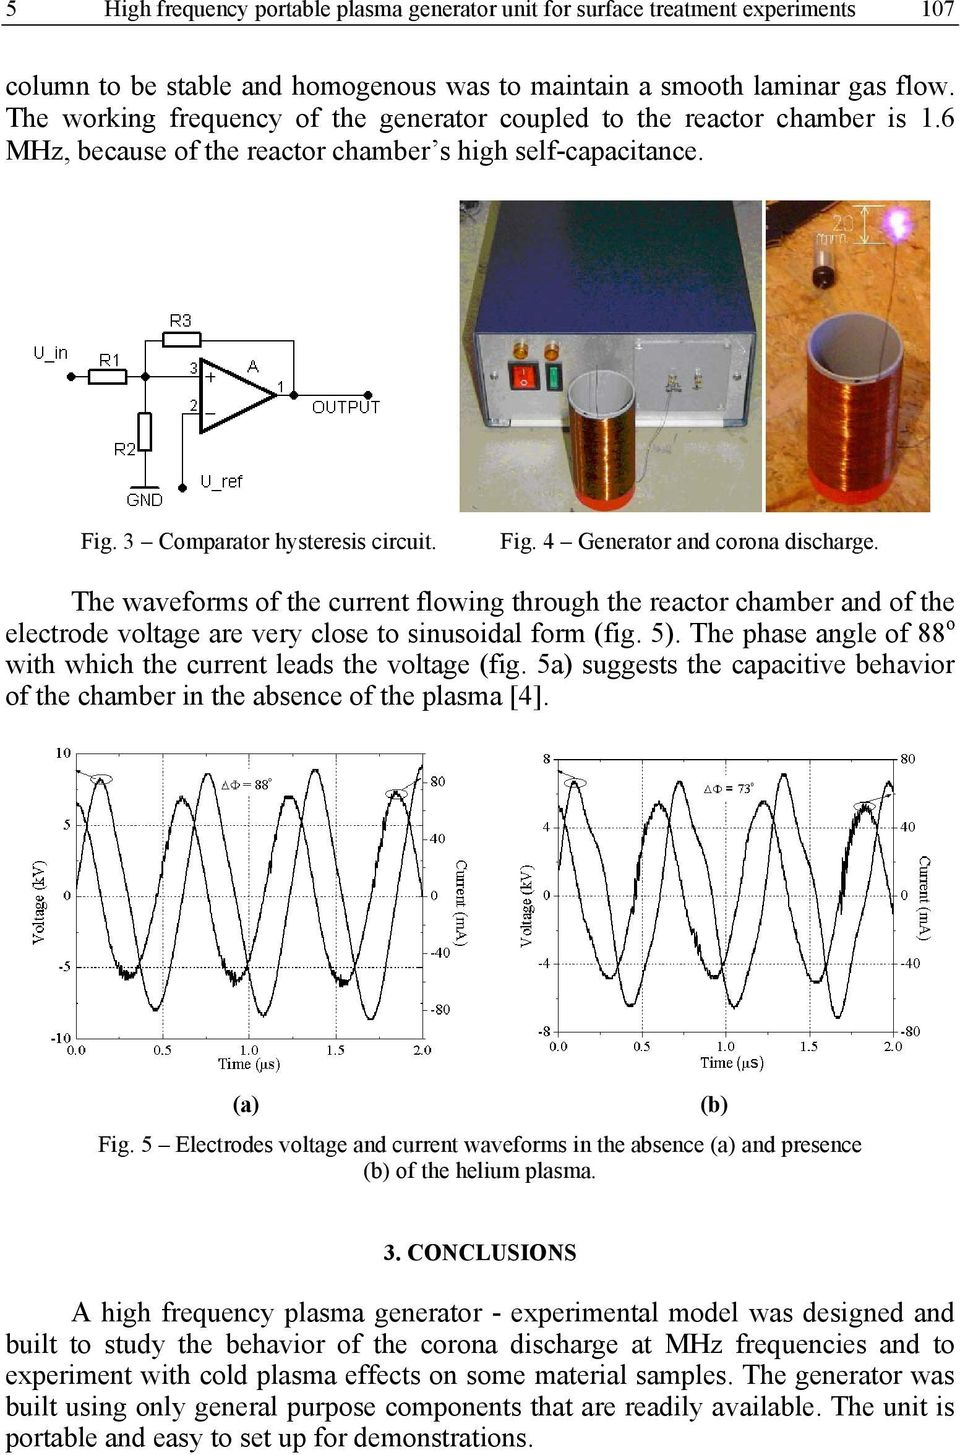 High Frequency Portable Plasma Generator Unit For Surface Treatment The Figure Below Shows Pir325 Electricalspecifications And Layout Waveforms Of Current Flowing Through Reactor Chamber Electrode Voltage Are